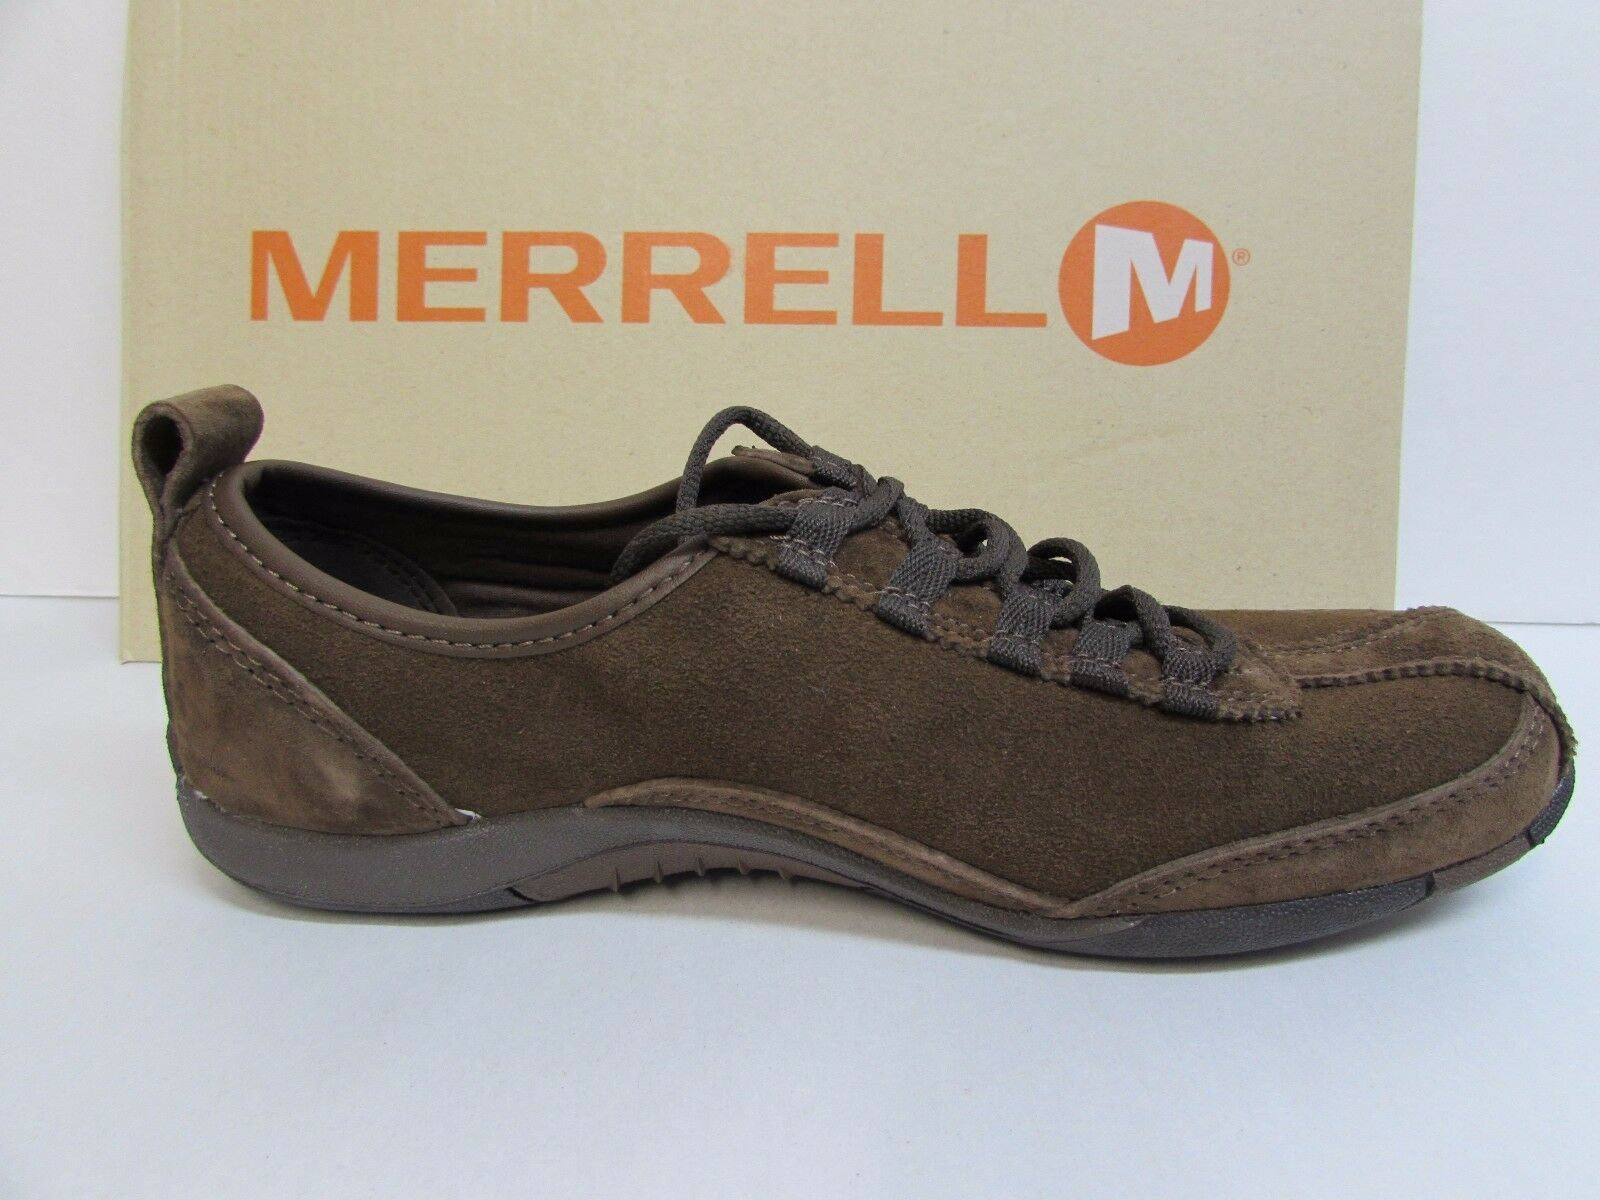 Merrell Size 7 M Brown Brown Brown Leather Performance Footwear New Womens shoes 3bda29